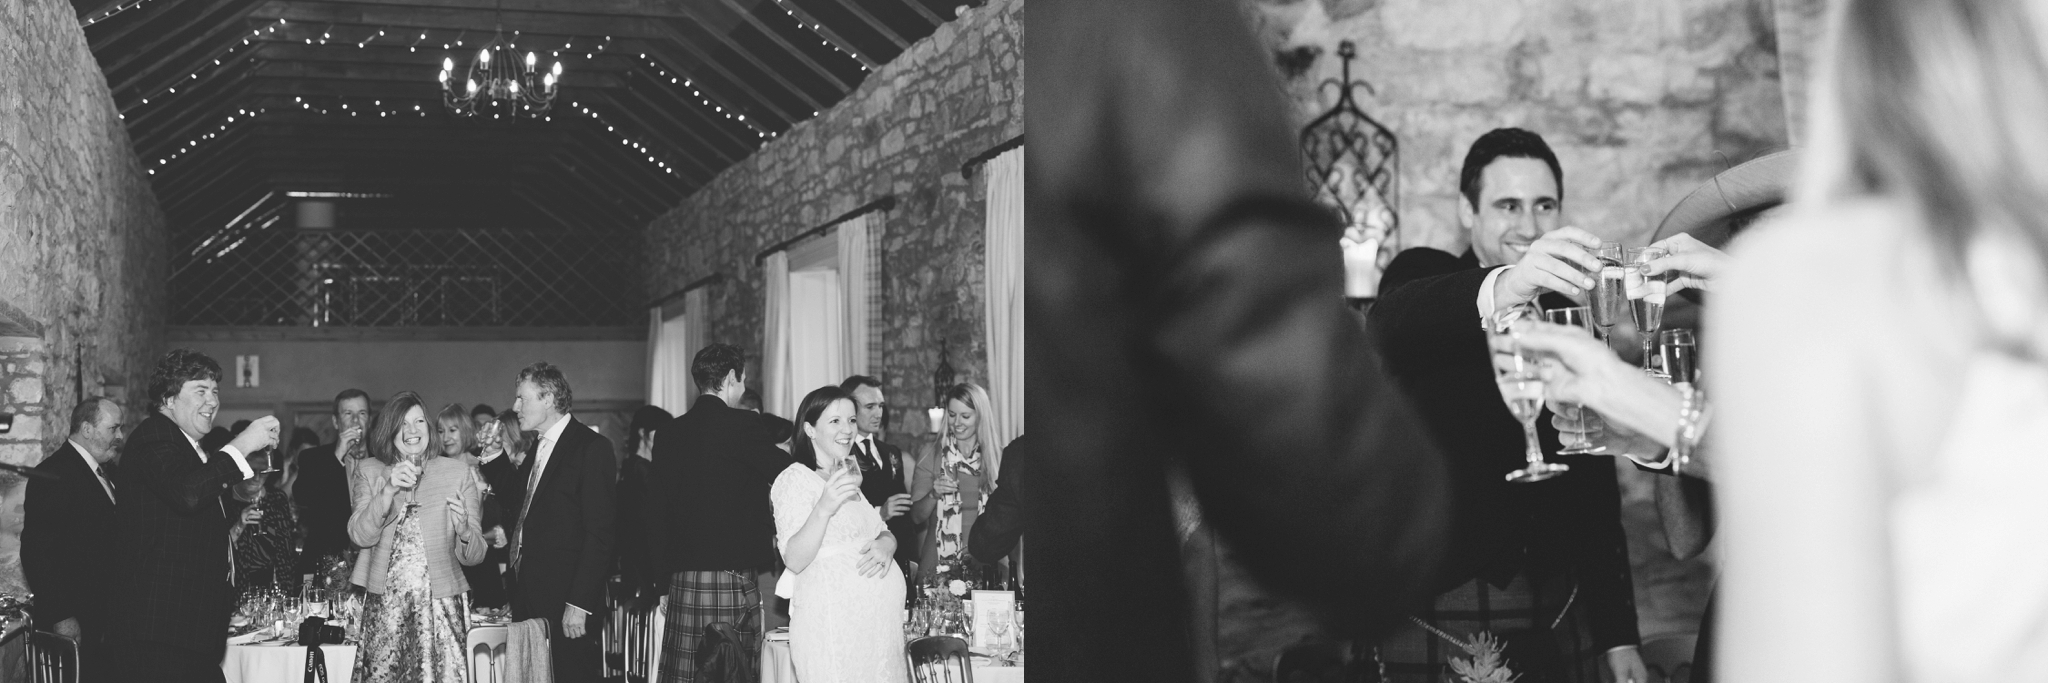 Suzanne_li_photography_kirknewton_wedding_0062.jpg